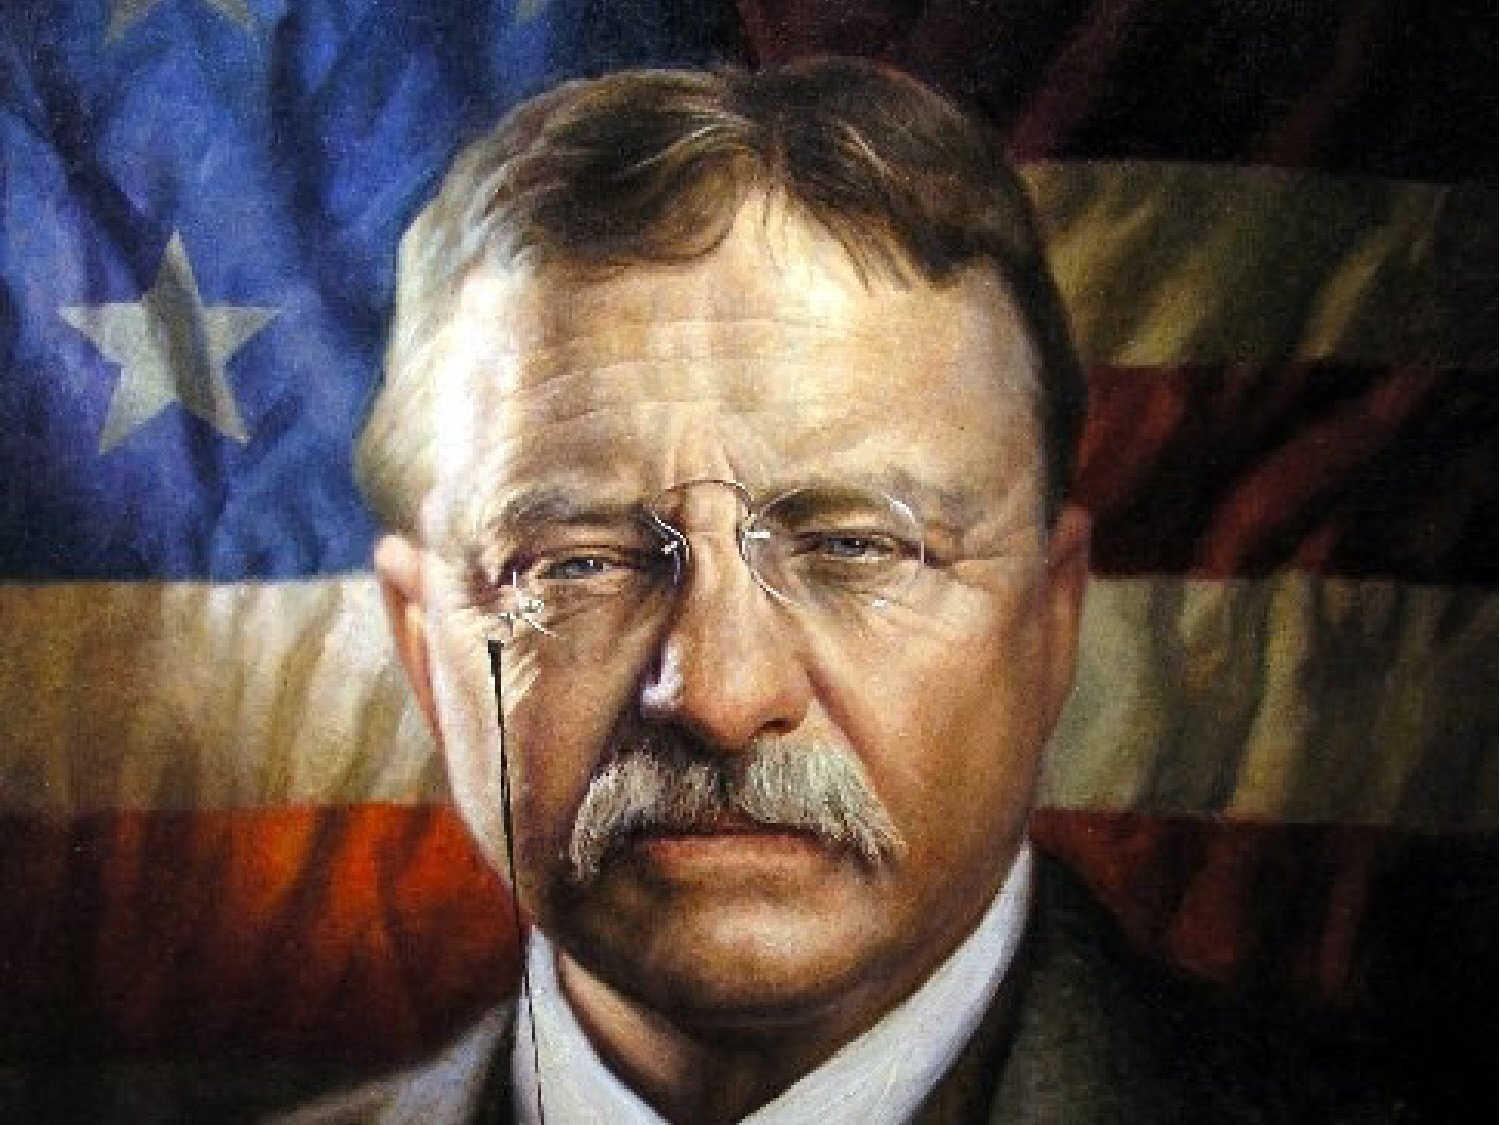 theodore roosevelt essay theodore roosevelt and american racism global research centre global research theodore roosevelt and american racism global